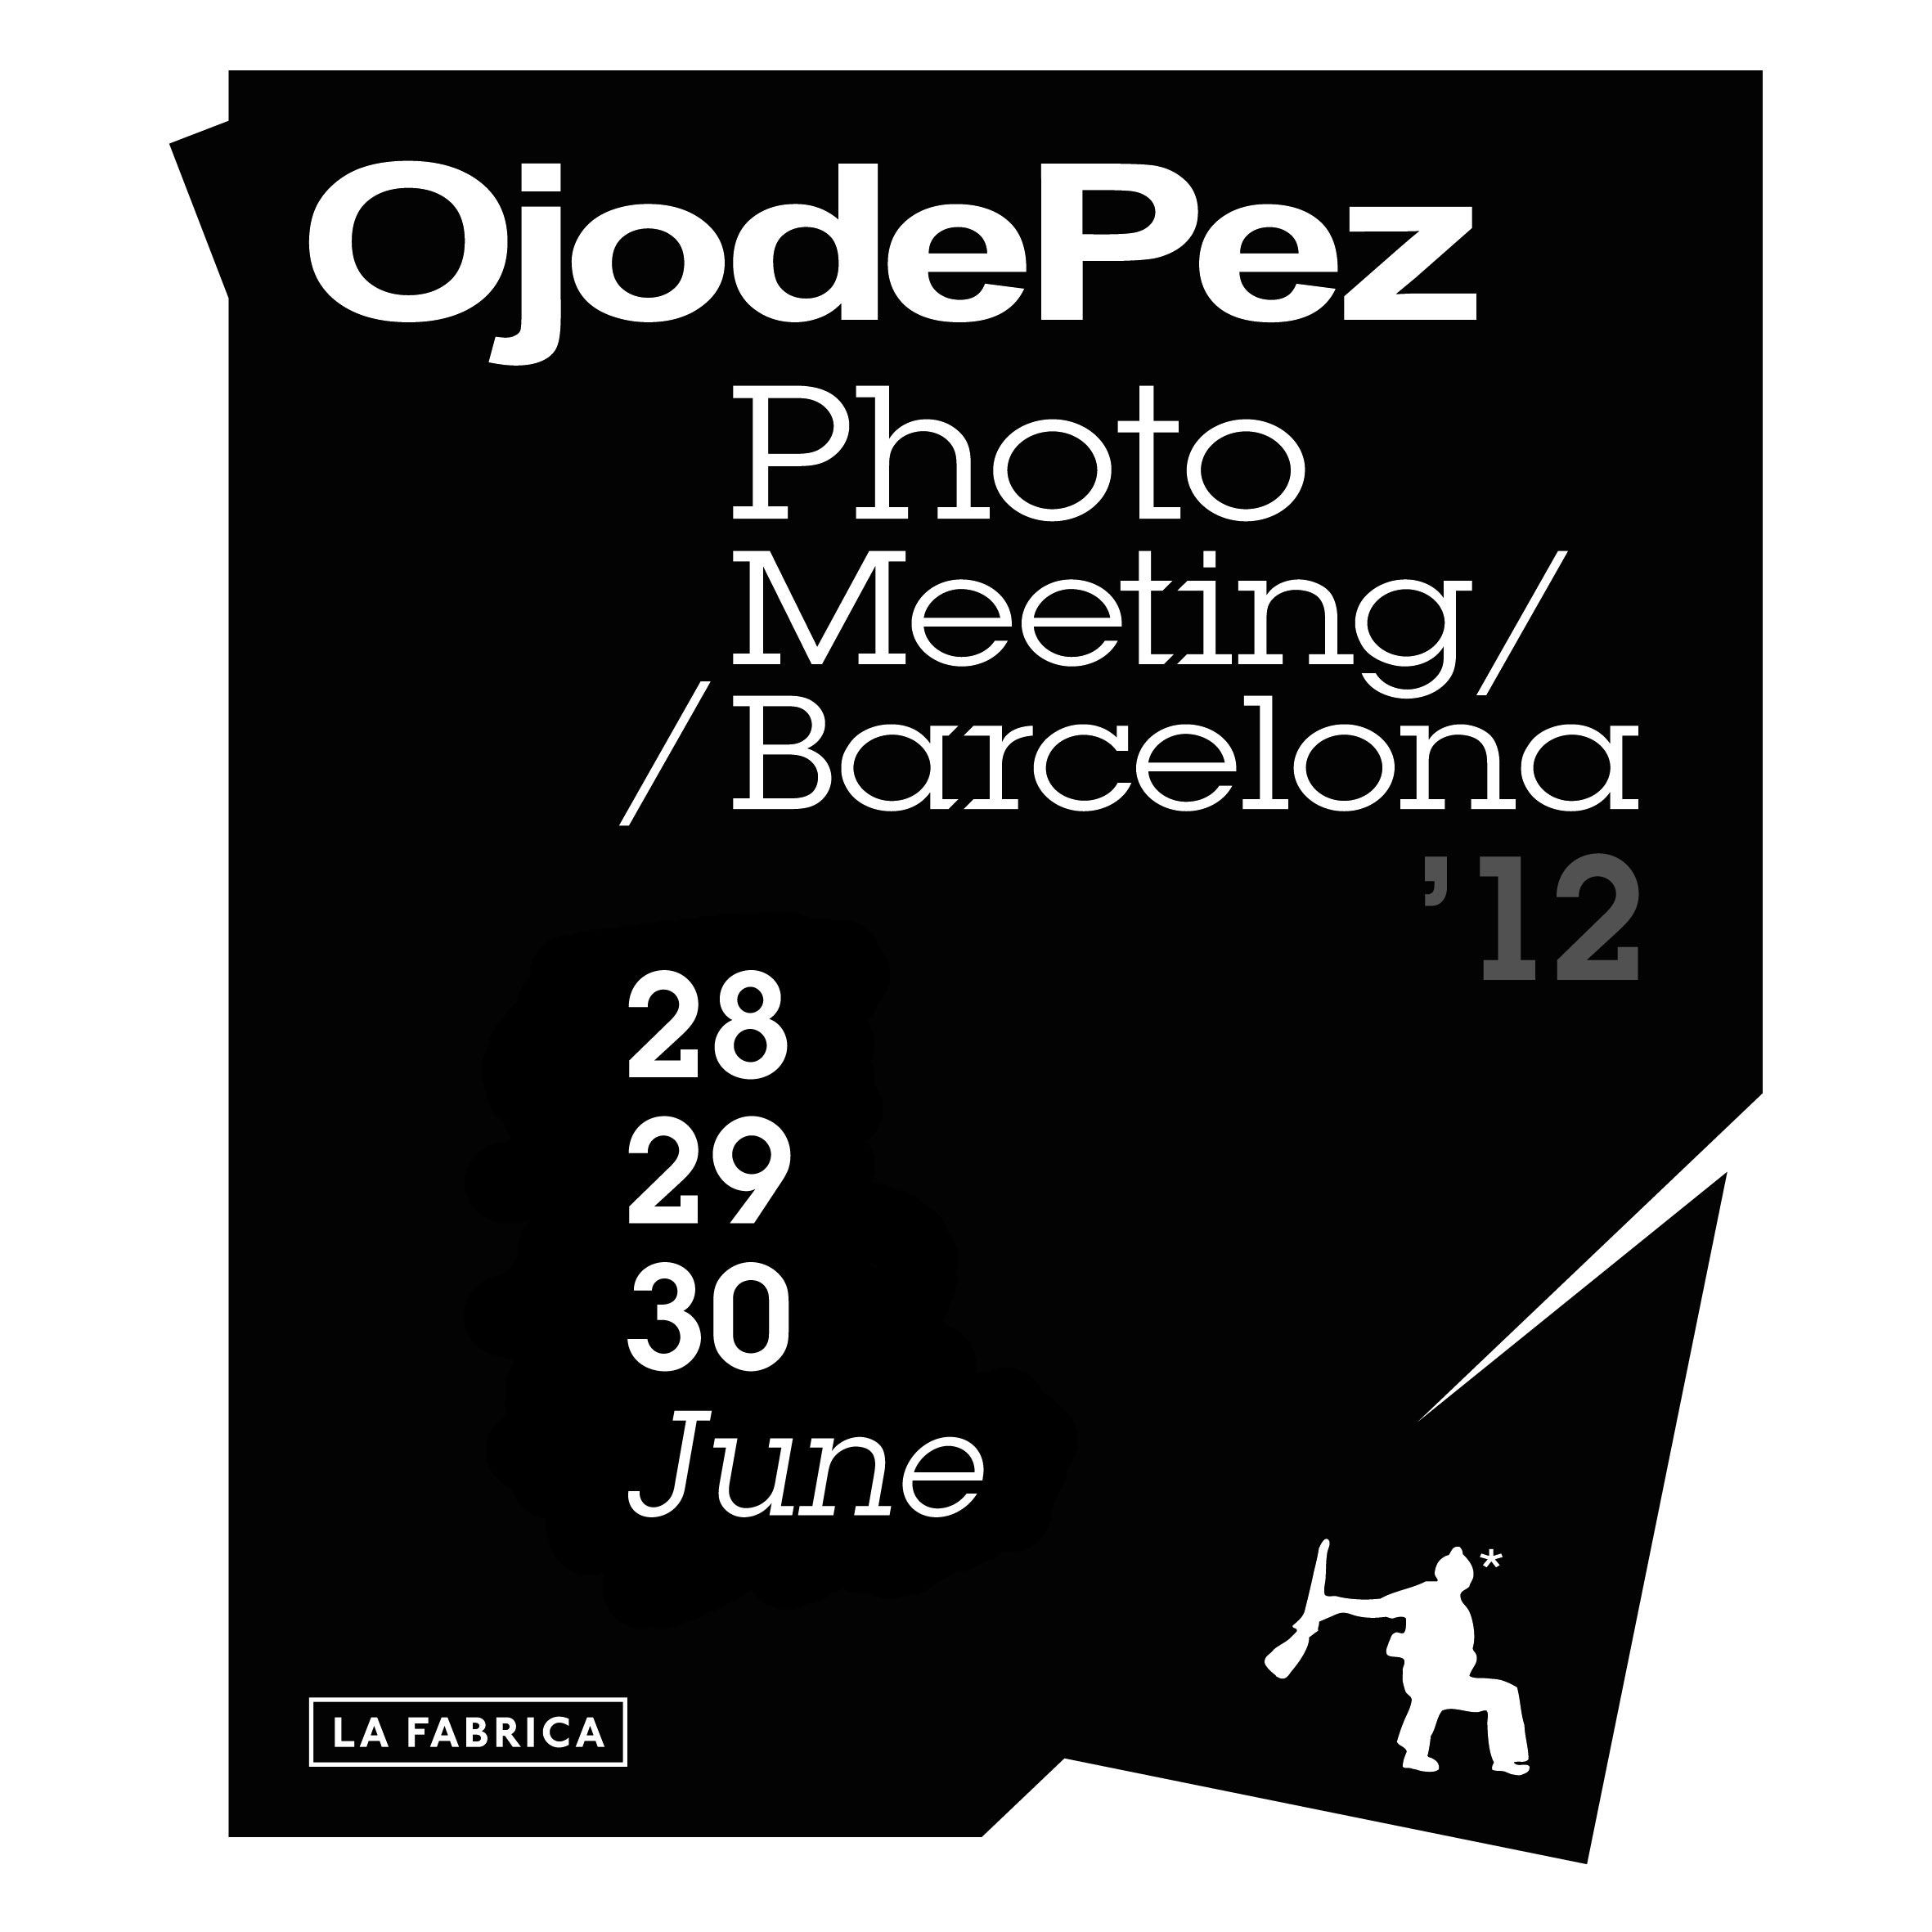 OjodePez Photo Meeting Barcelona'12